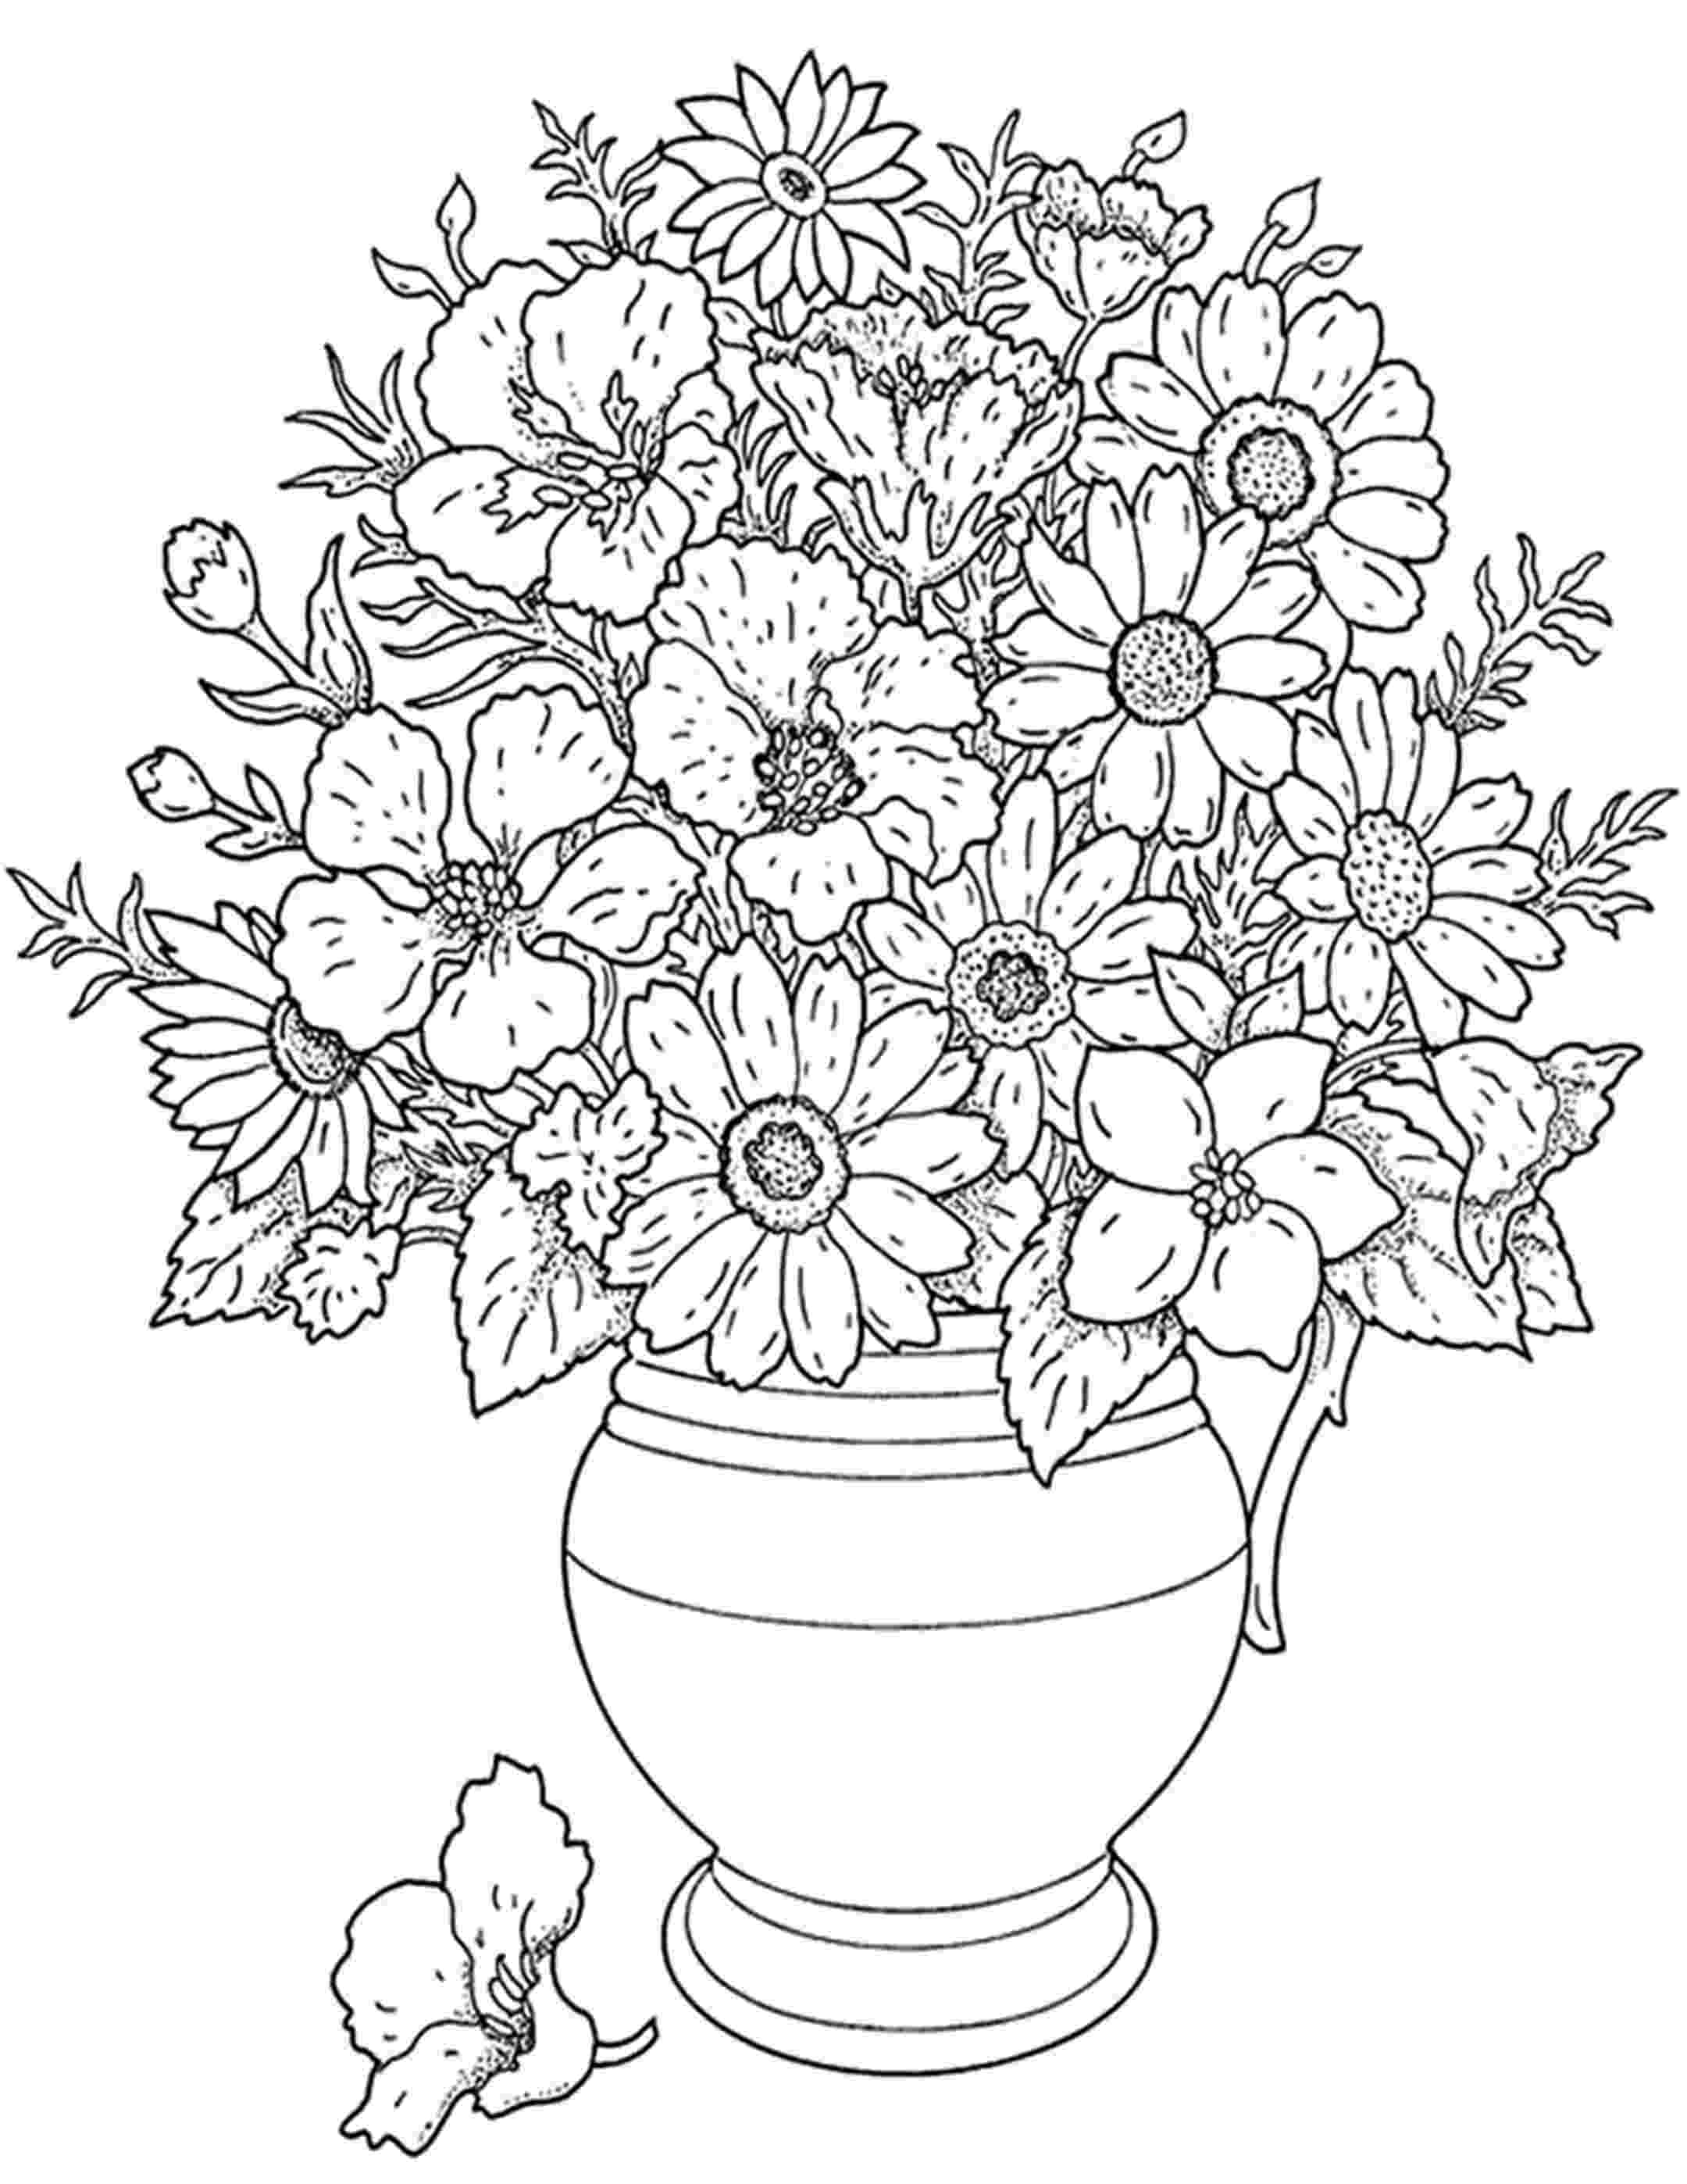 flower colouring pages to print free printable flower coloring pages for kids best colouring print pages to flower